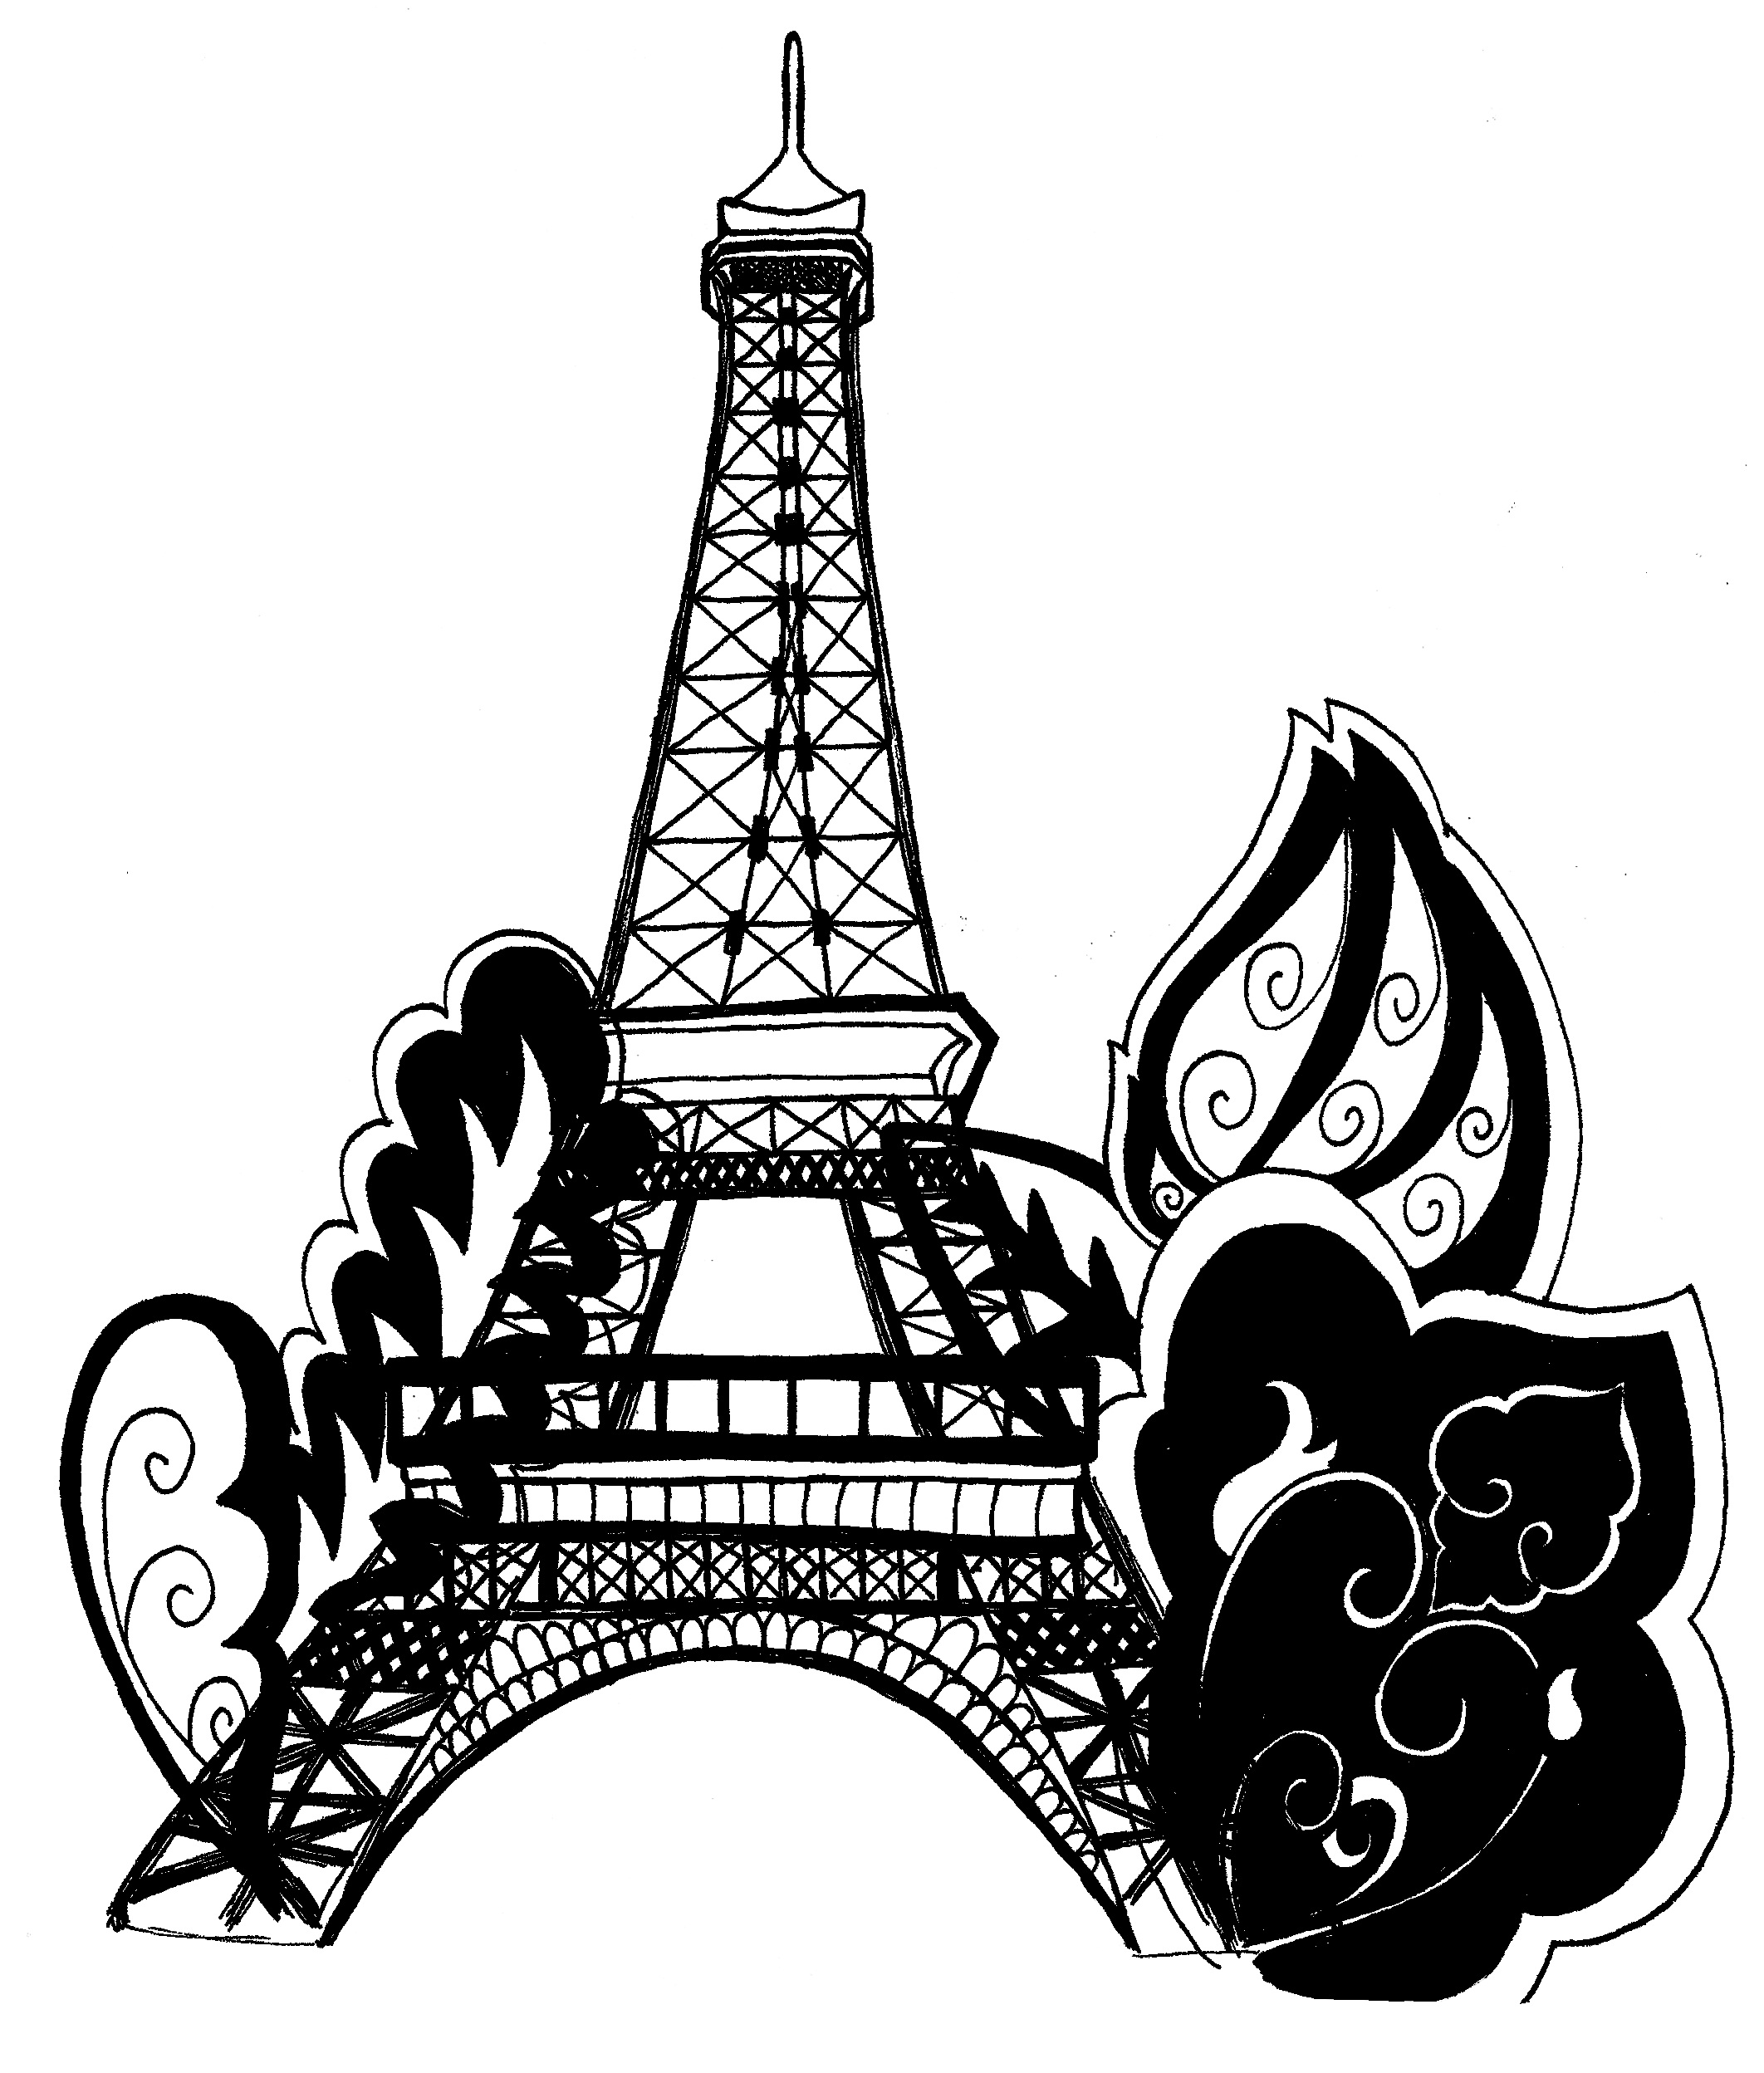 eiffel tower coloring pages images - Paris Eiffel Tower Coloring Pages